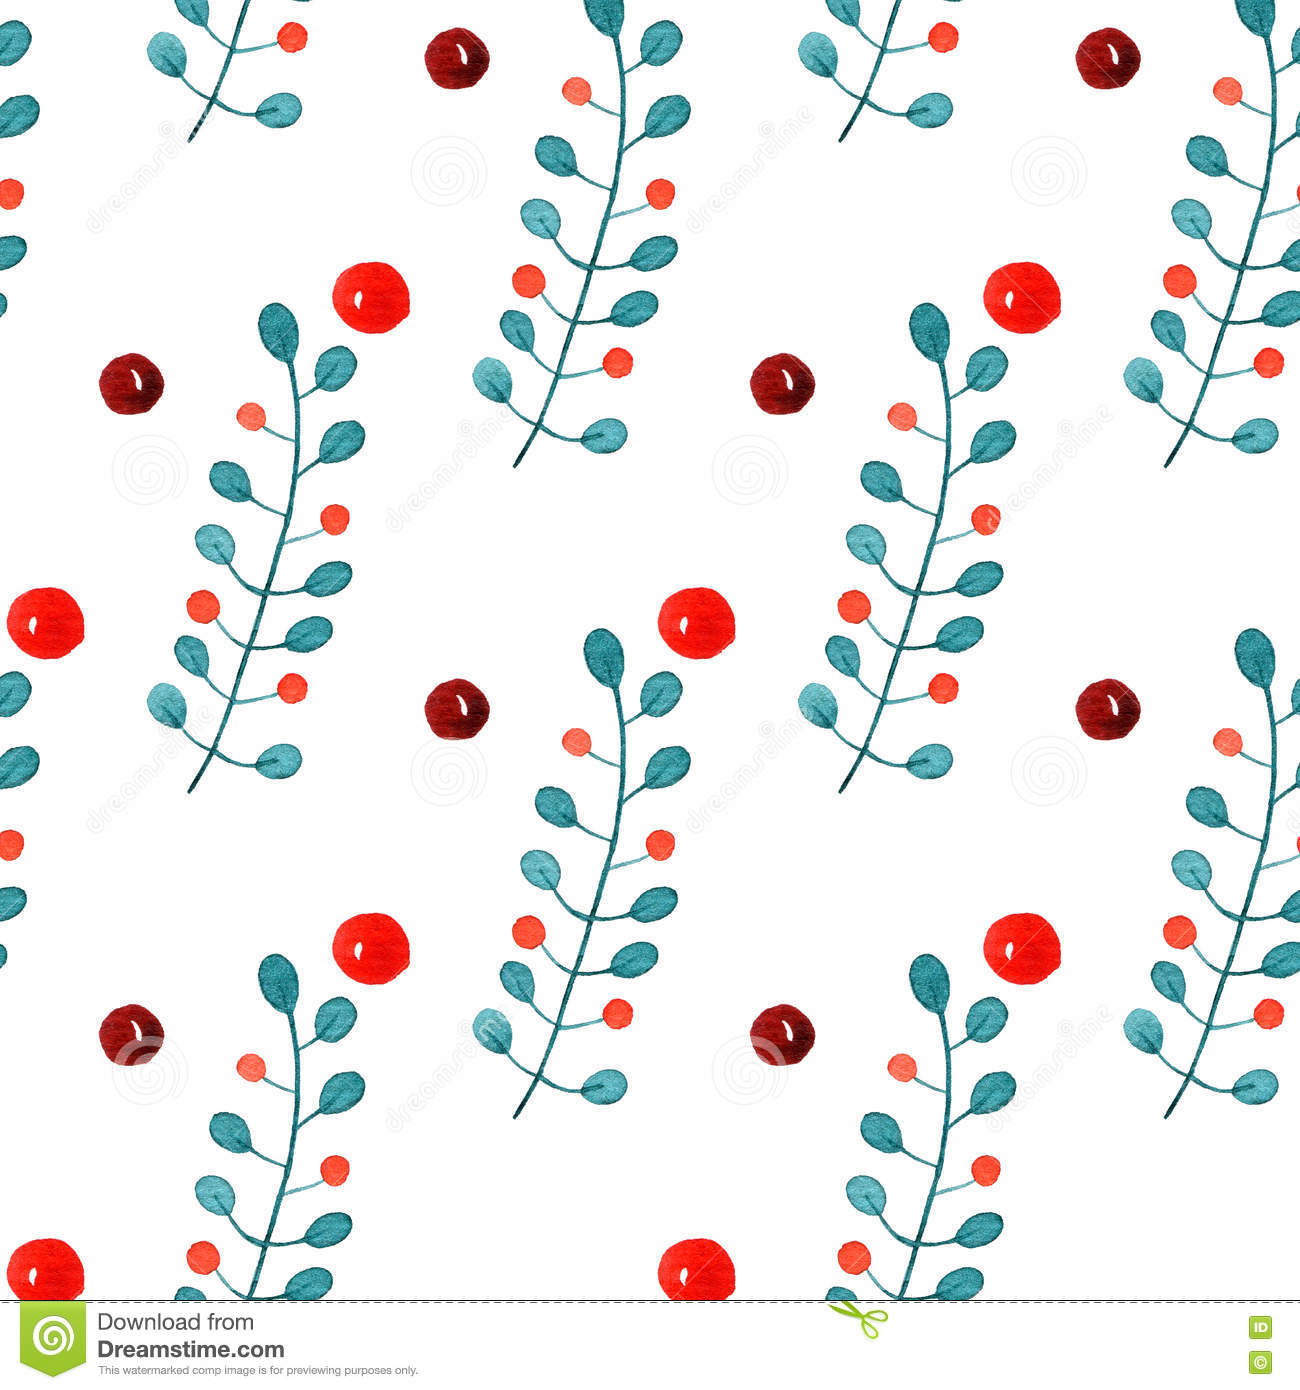 Holly christmas ornaments - Christmas Ornaments With The Branches And Holly Berries Watercolor Seamless Pattern On White Background